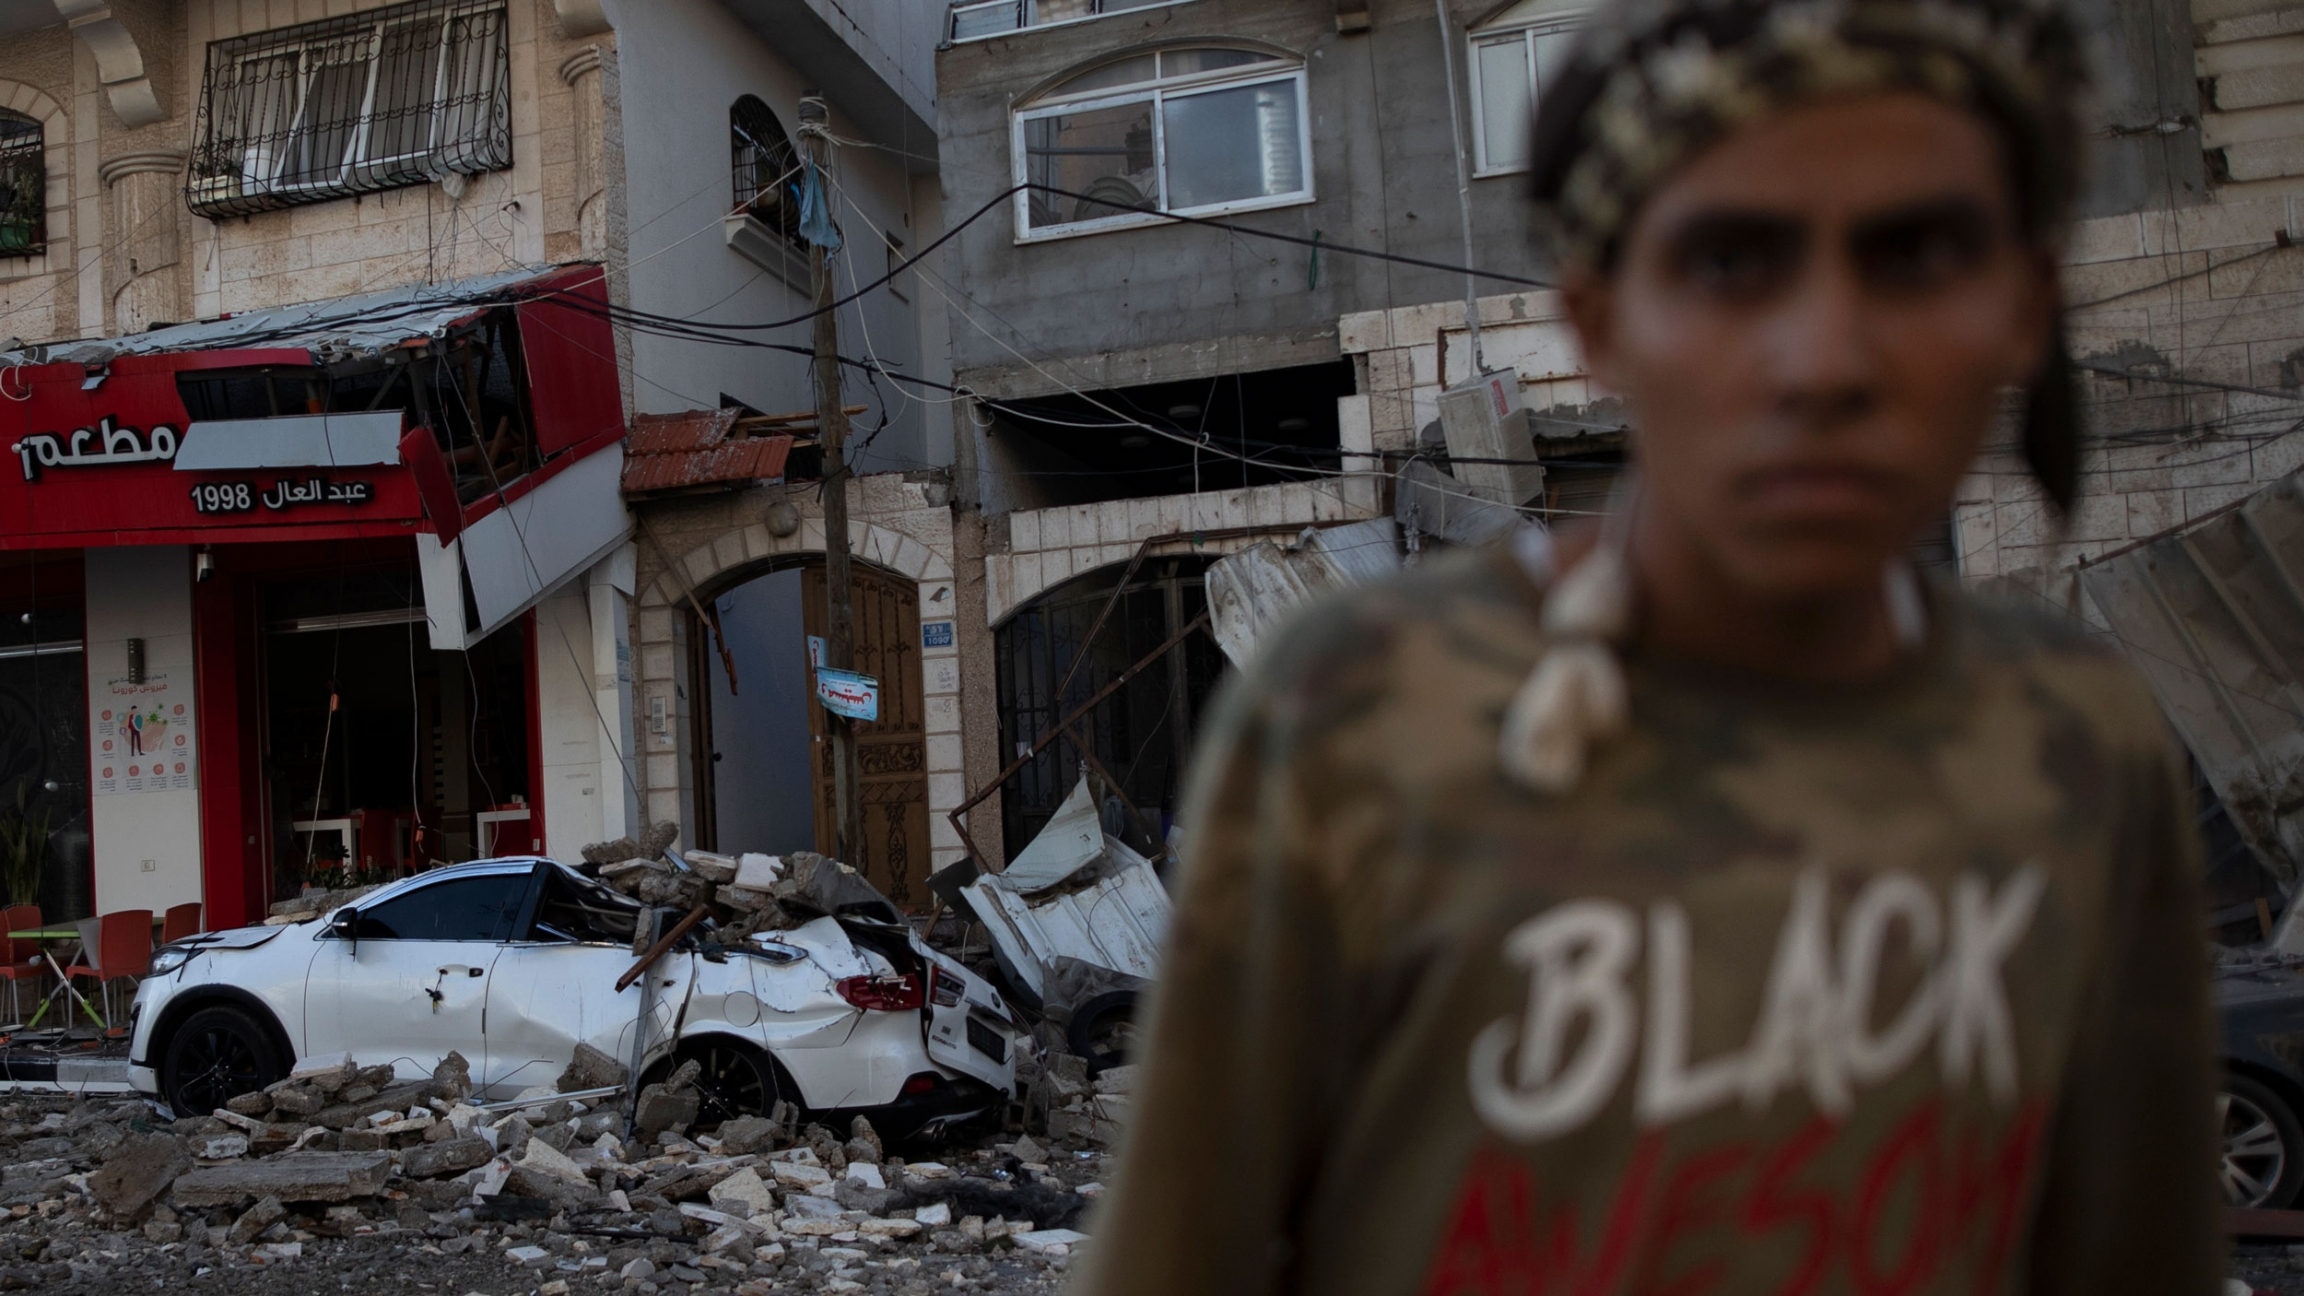 """A person is shown in soft focus wearing a shirt with the word """"Black"""" printed on it with the rubble of a bombed building a car in the background."""